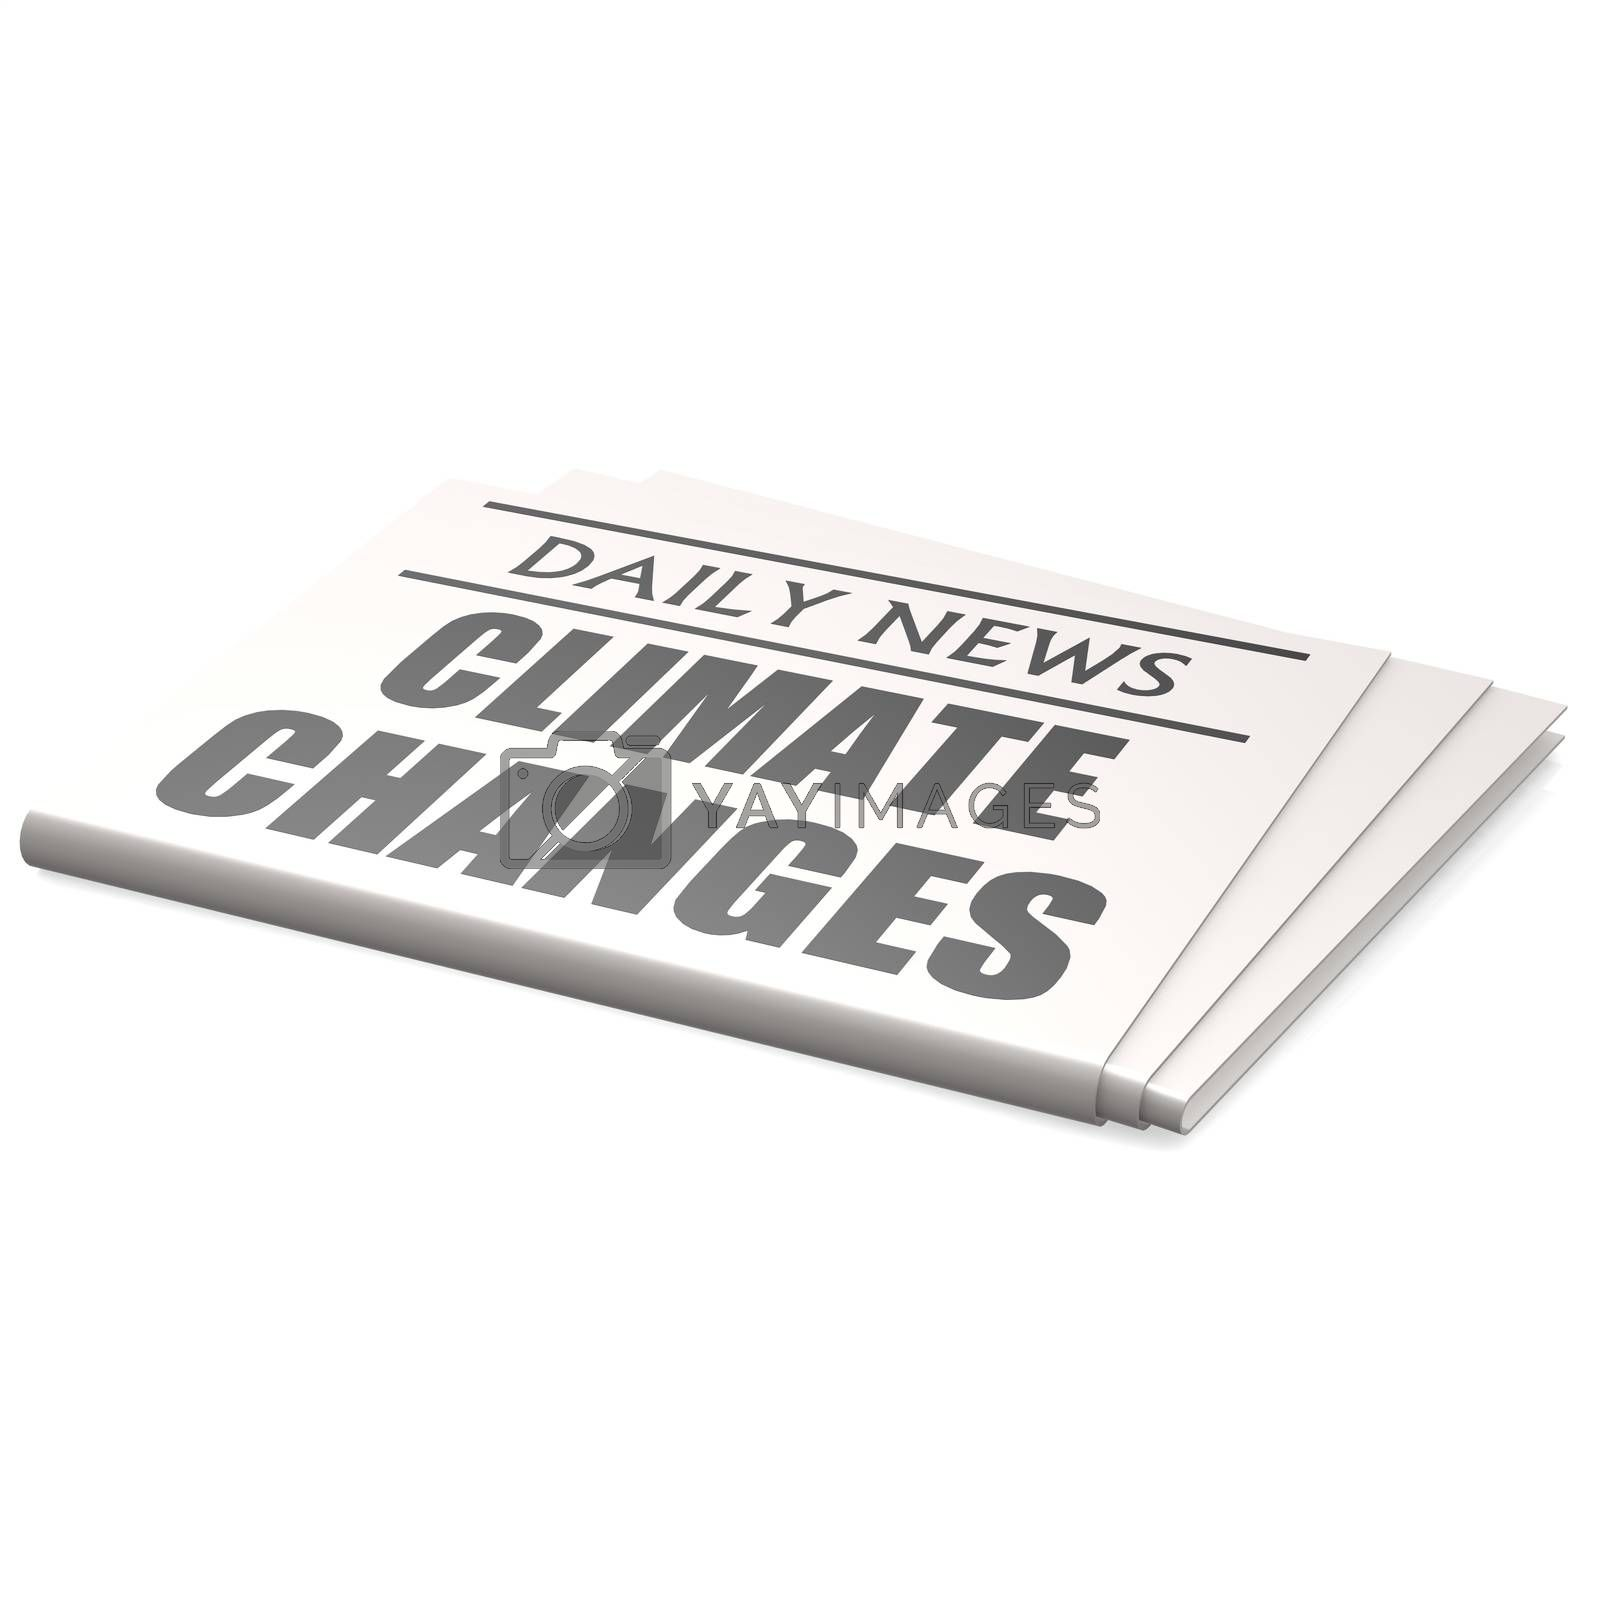 Newspaper climate changes by tang90246